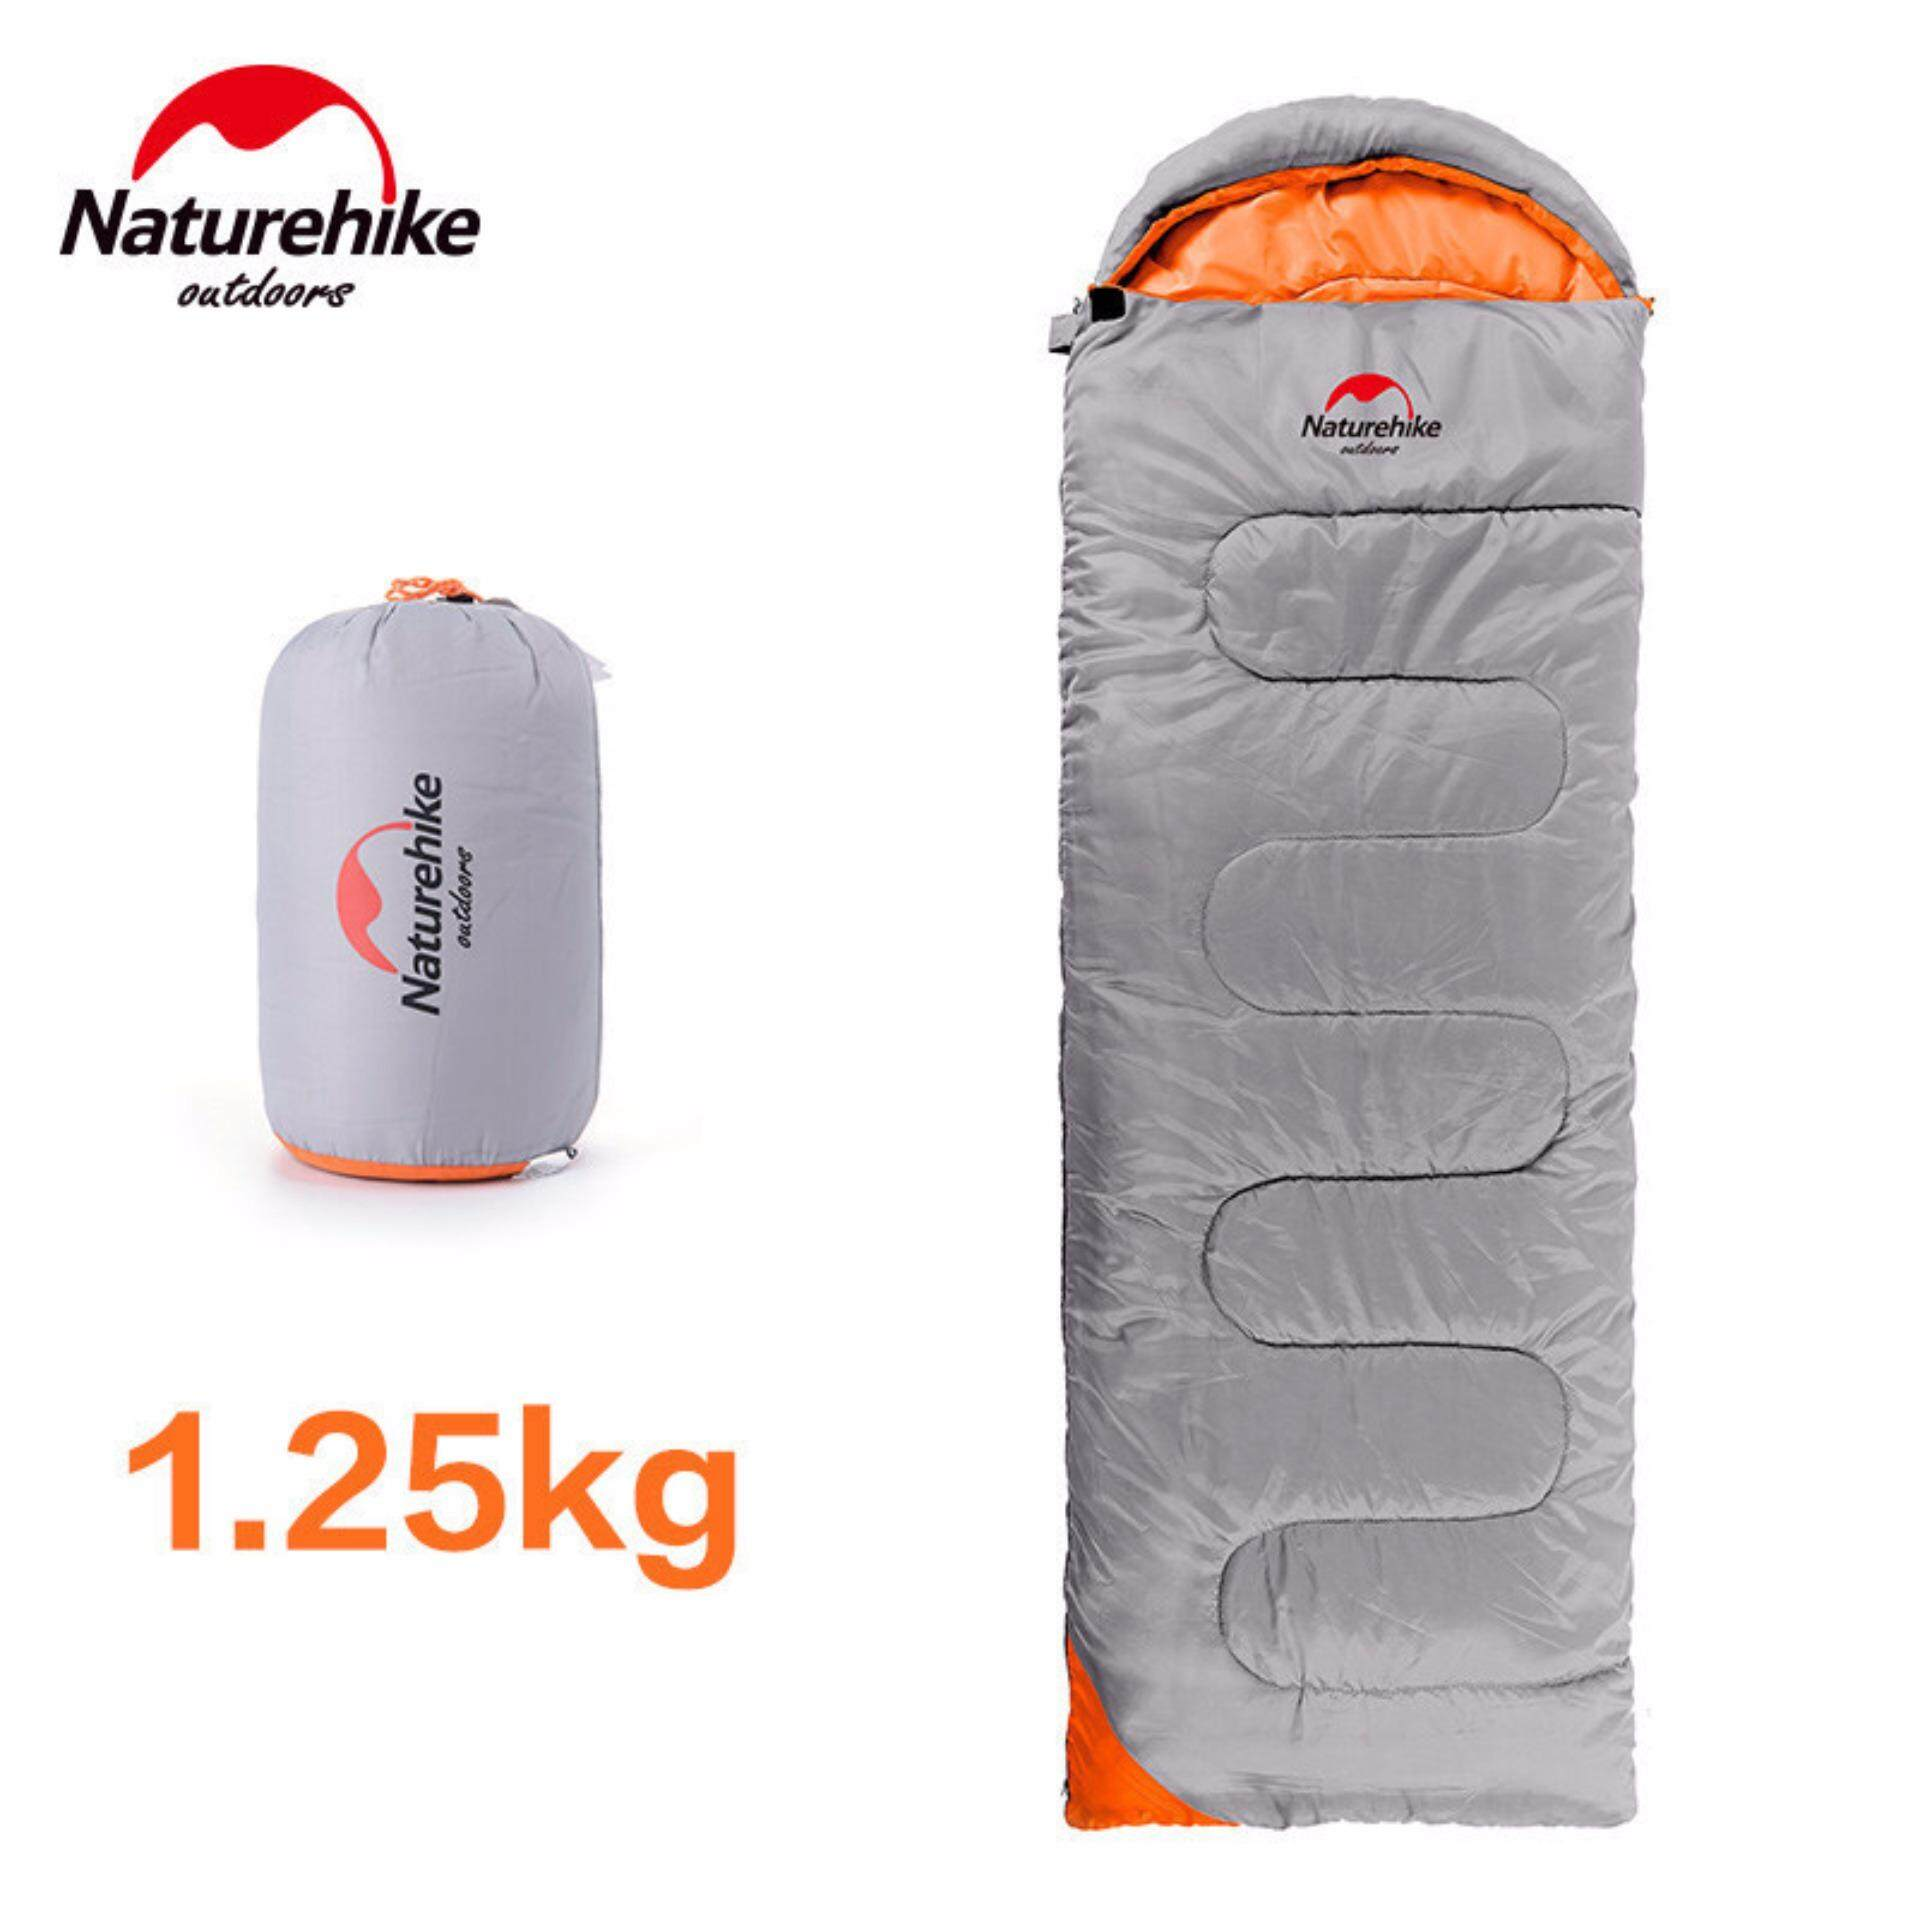 [READY STOCK] NatureHike Extra Long Ultralight Camping Sleeping Bag For Adult Outdoor Spring Autumn Hiking Bag (2.2M x 0.75M) - Silver